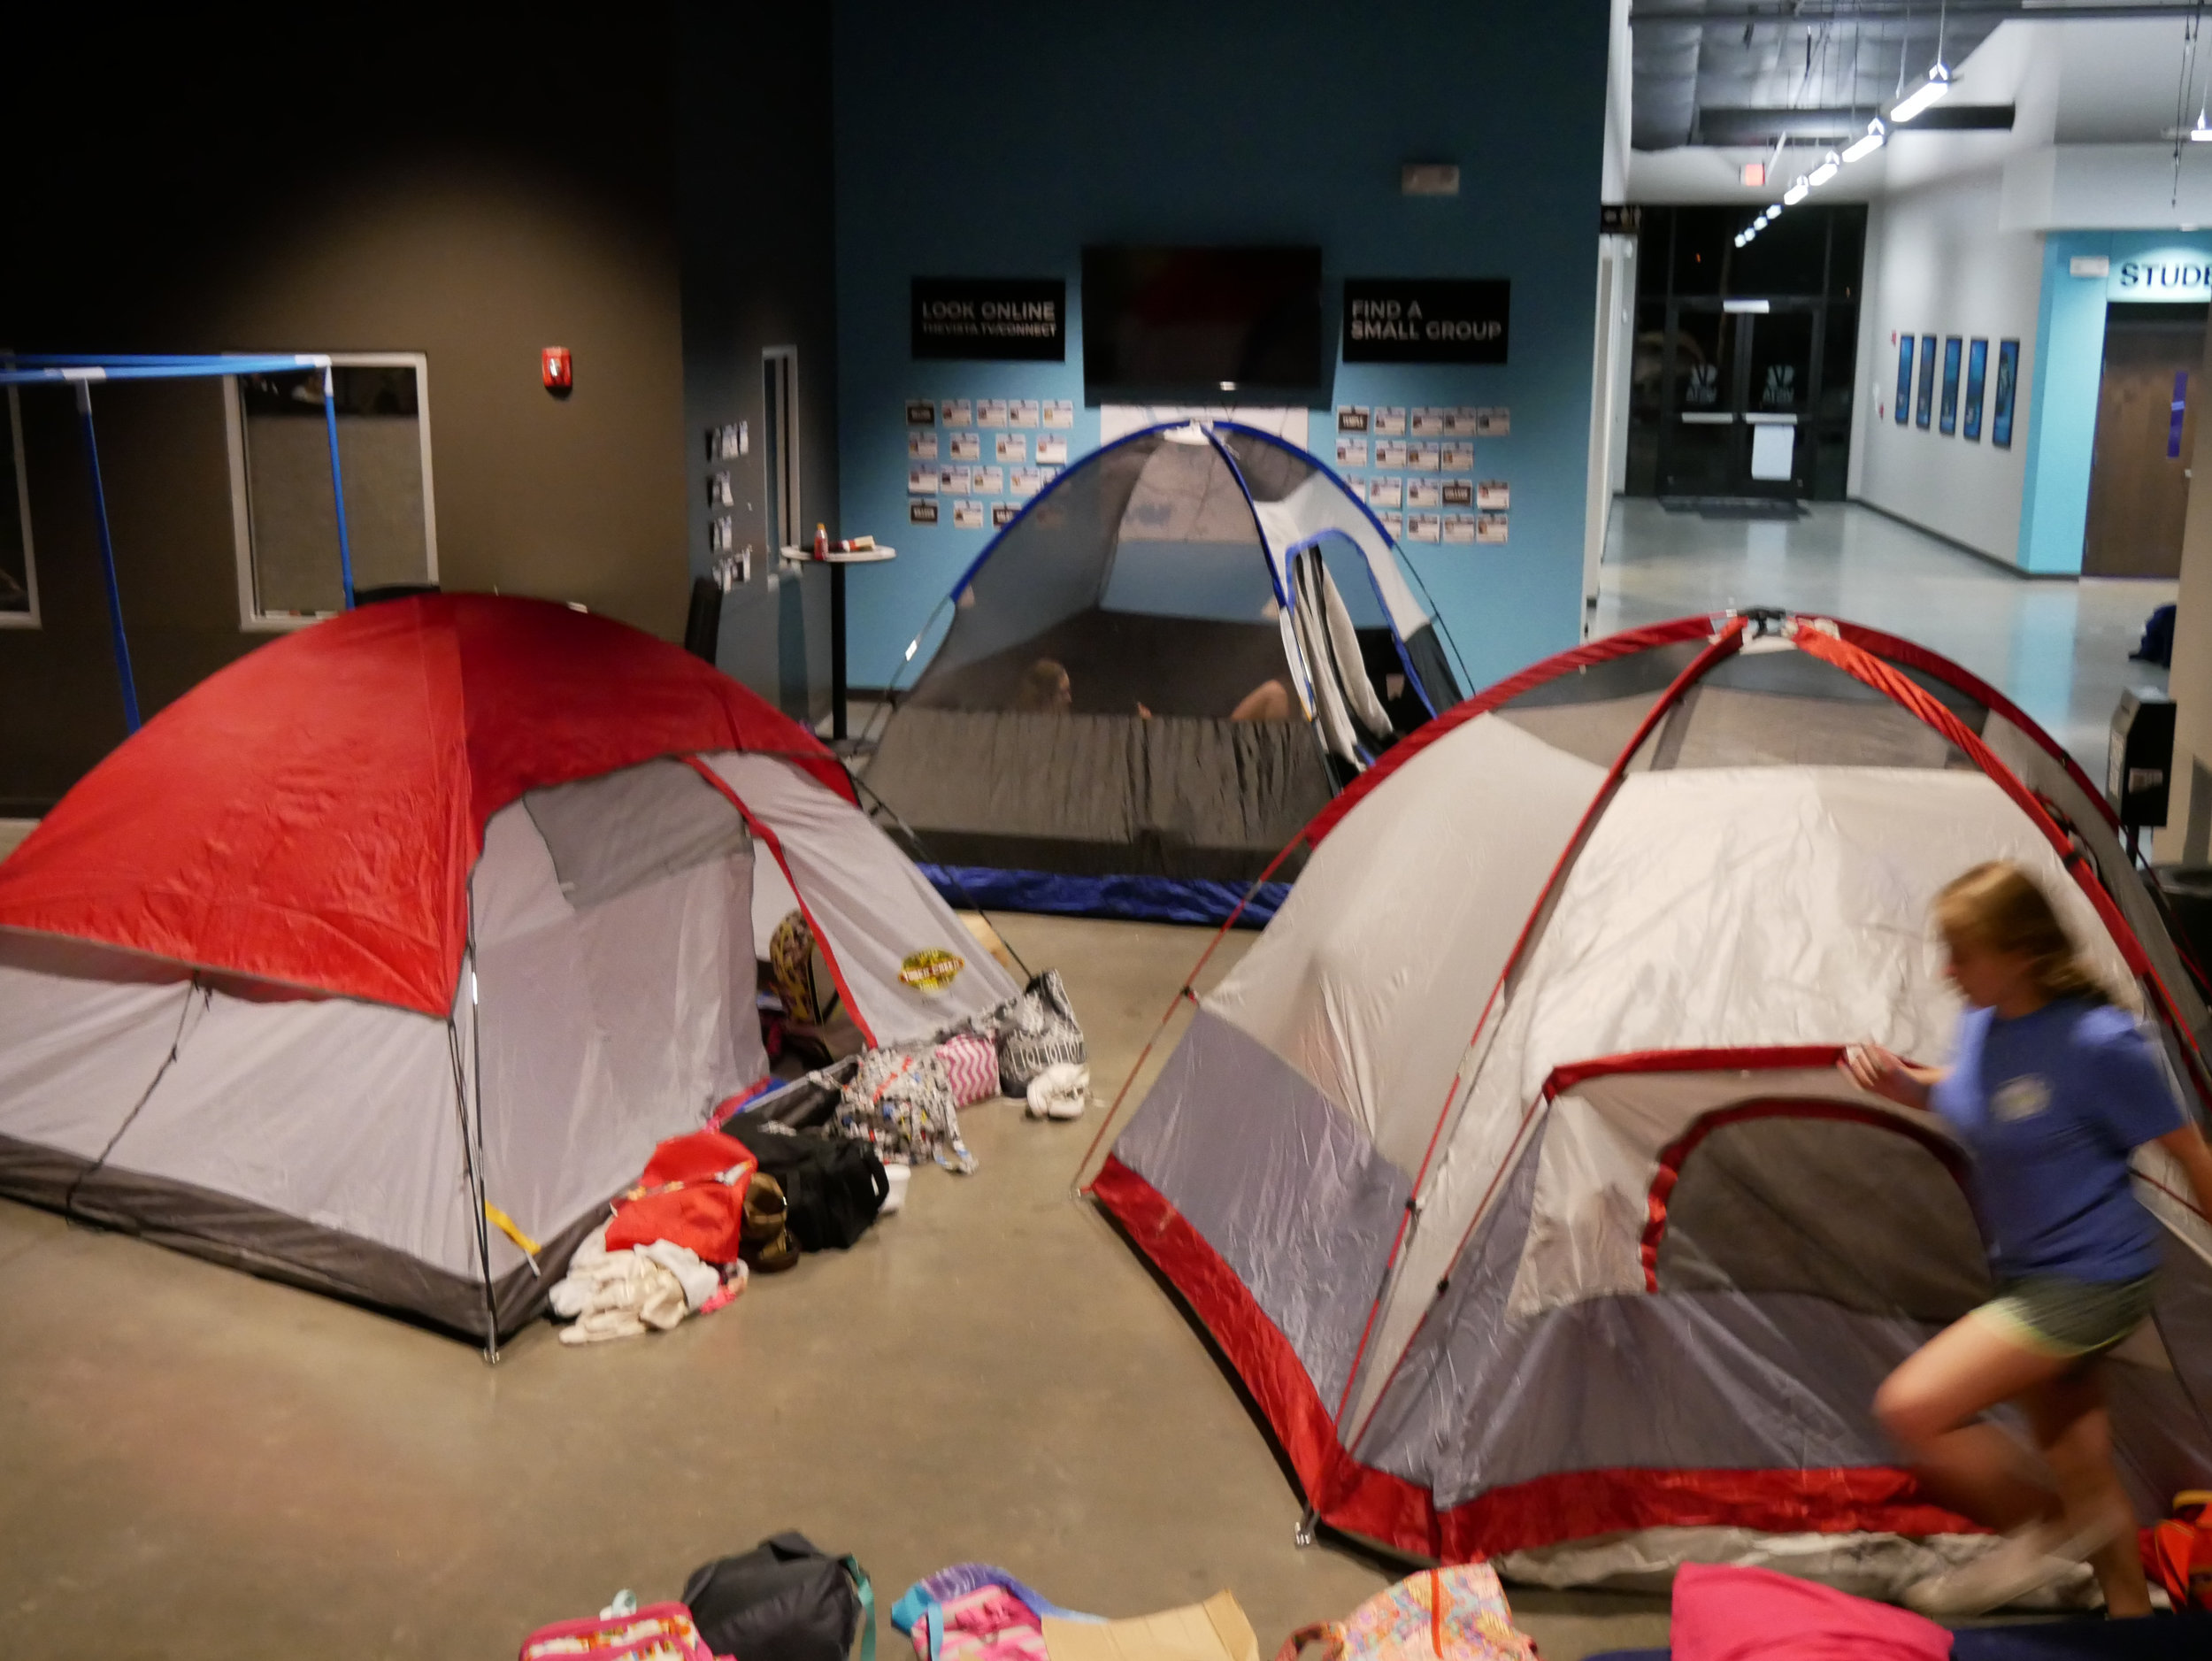 Tents in the Vista Commons!